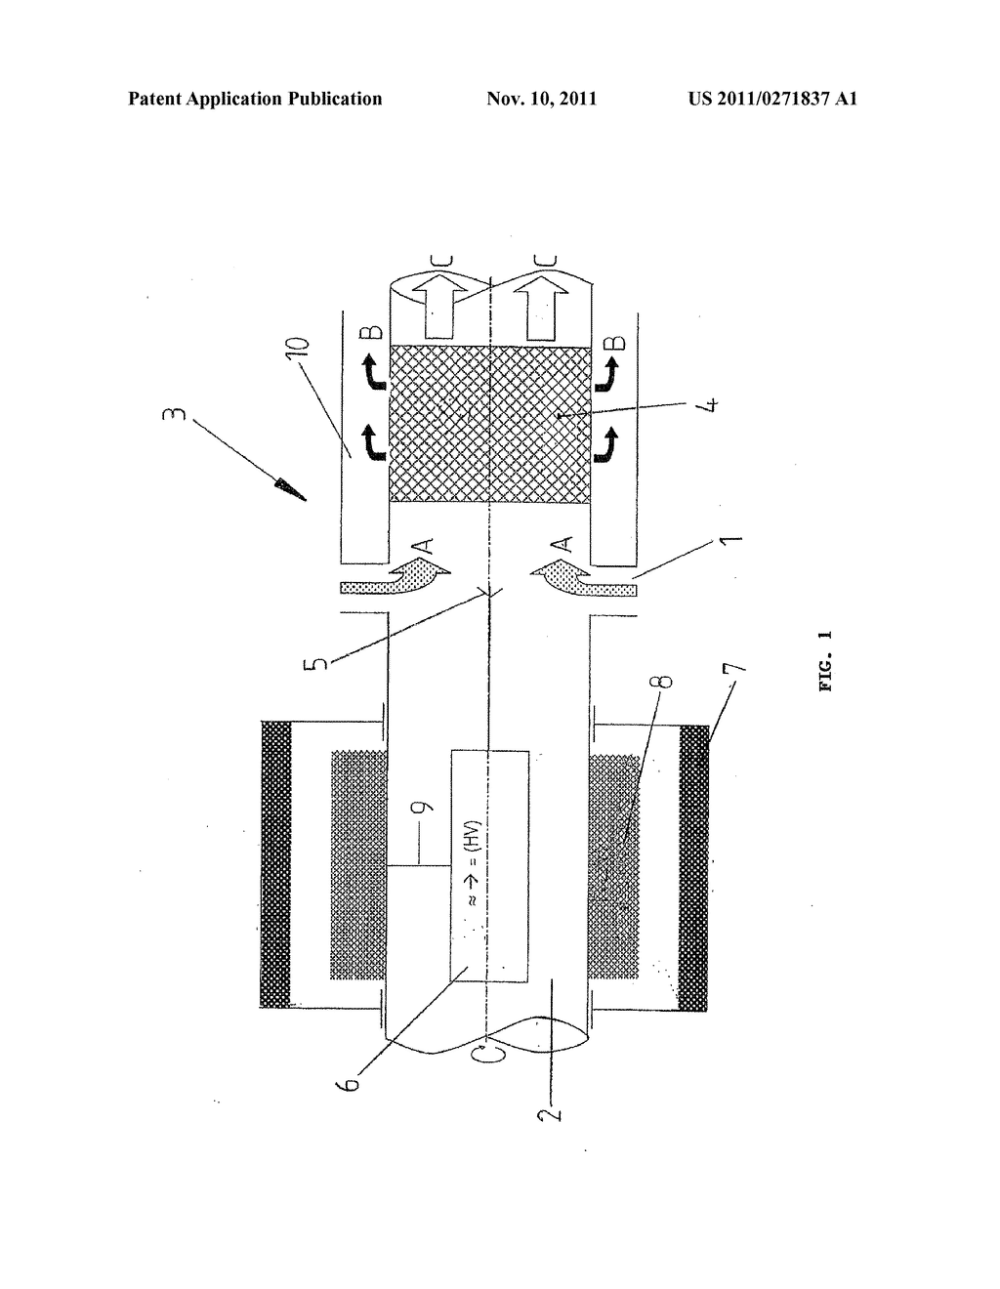 medium resolution of centrifugal oil separator for an aircraft engine diagram schematic and image 02